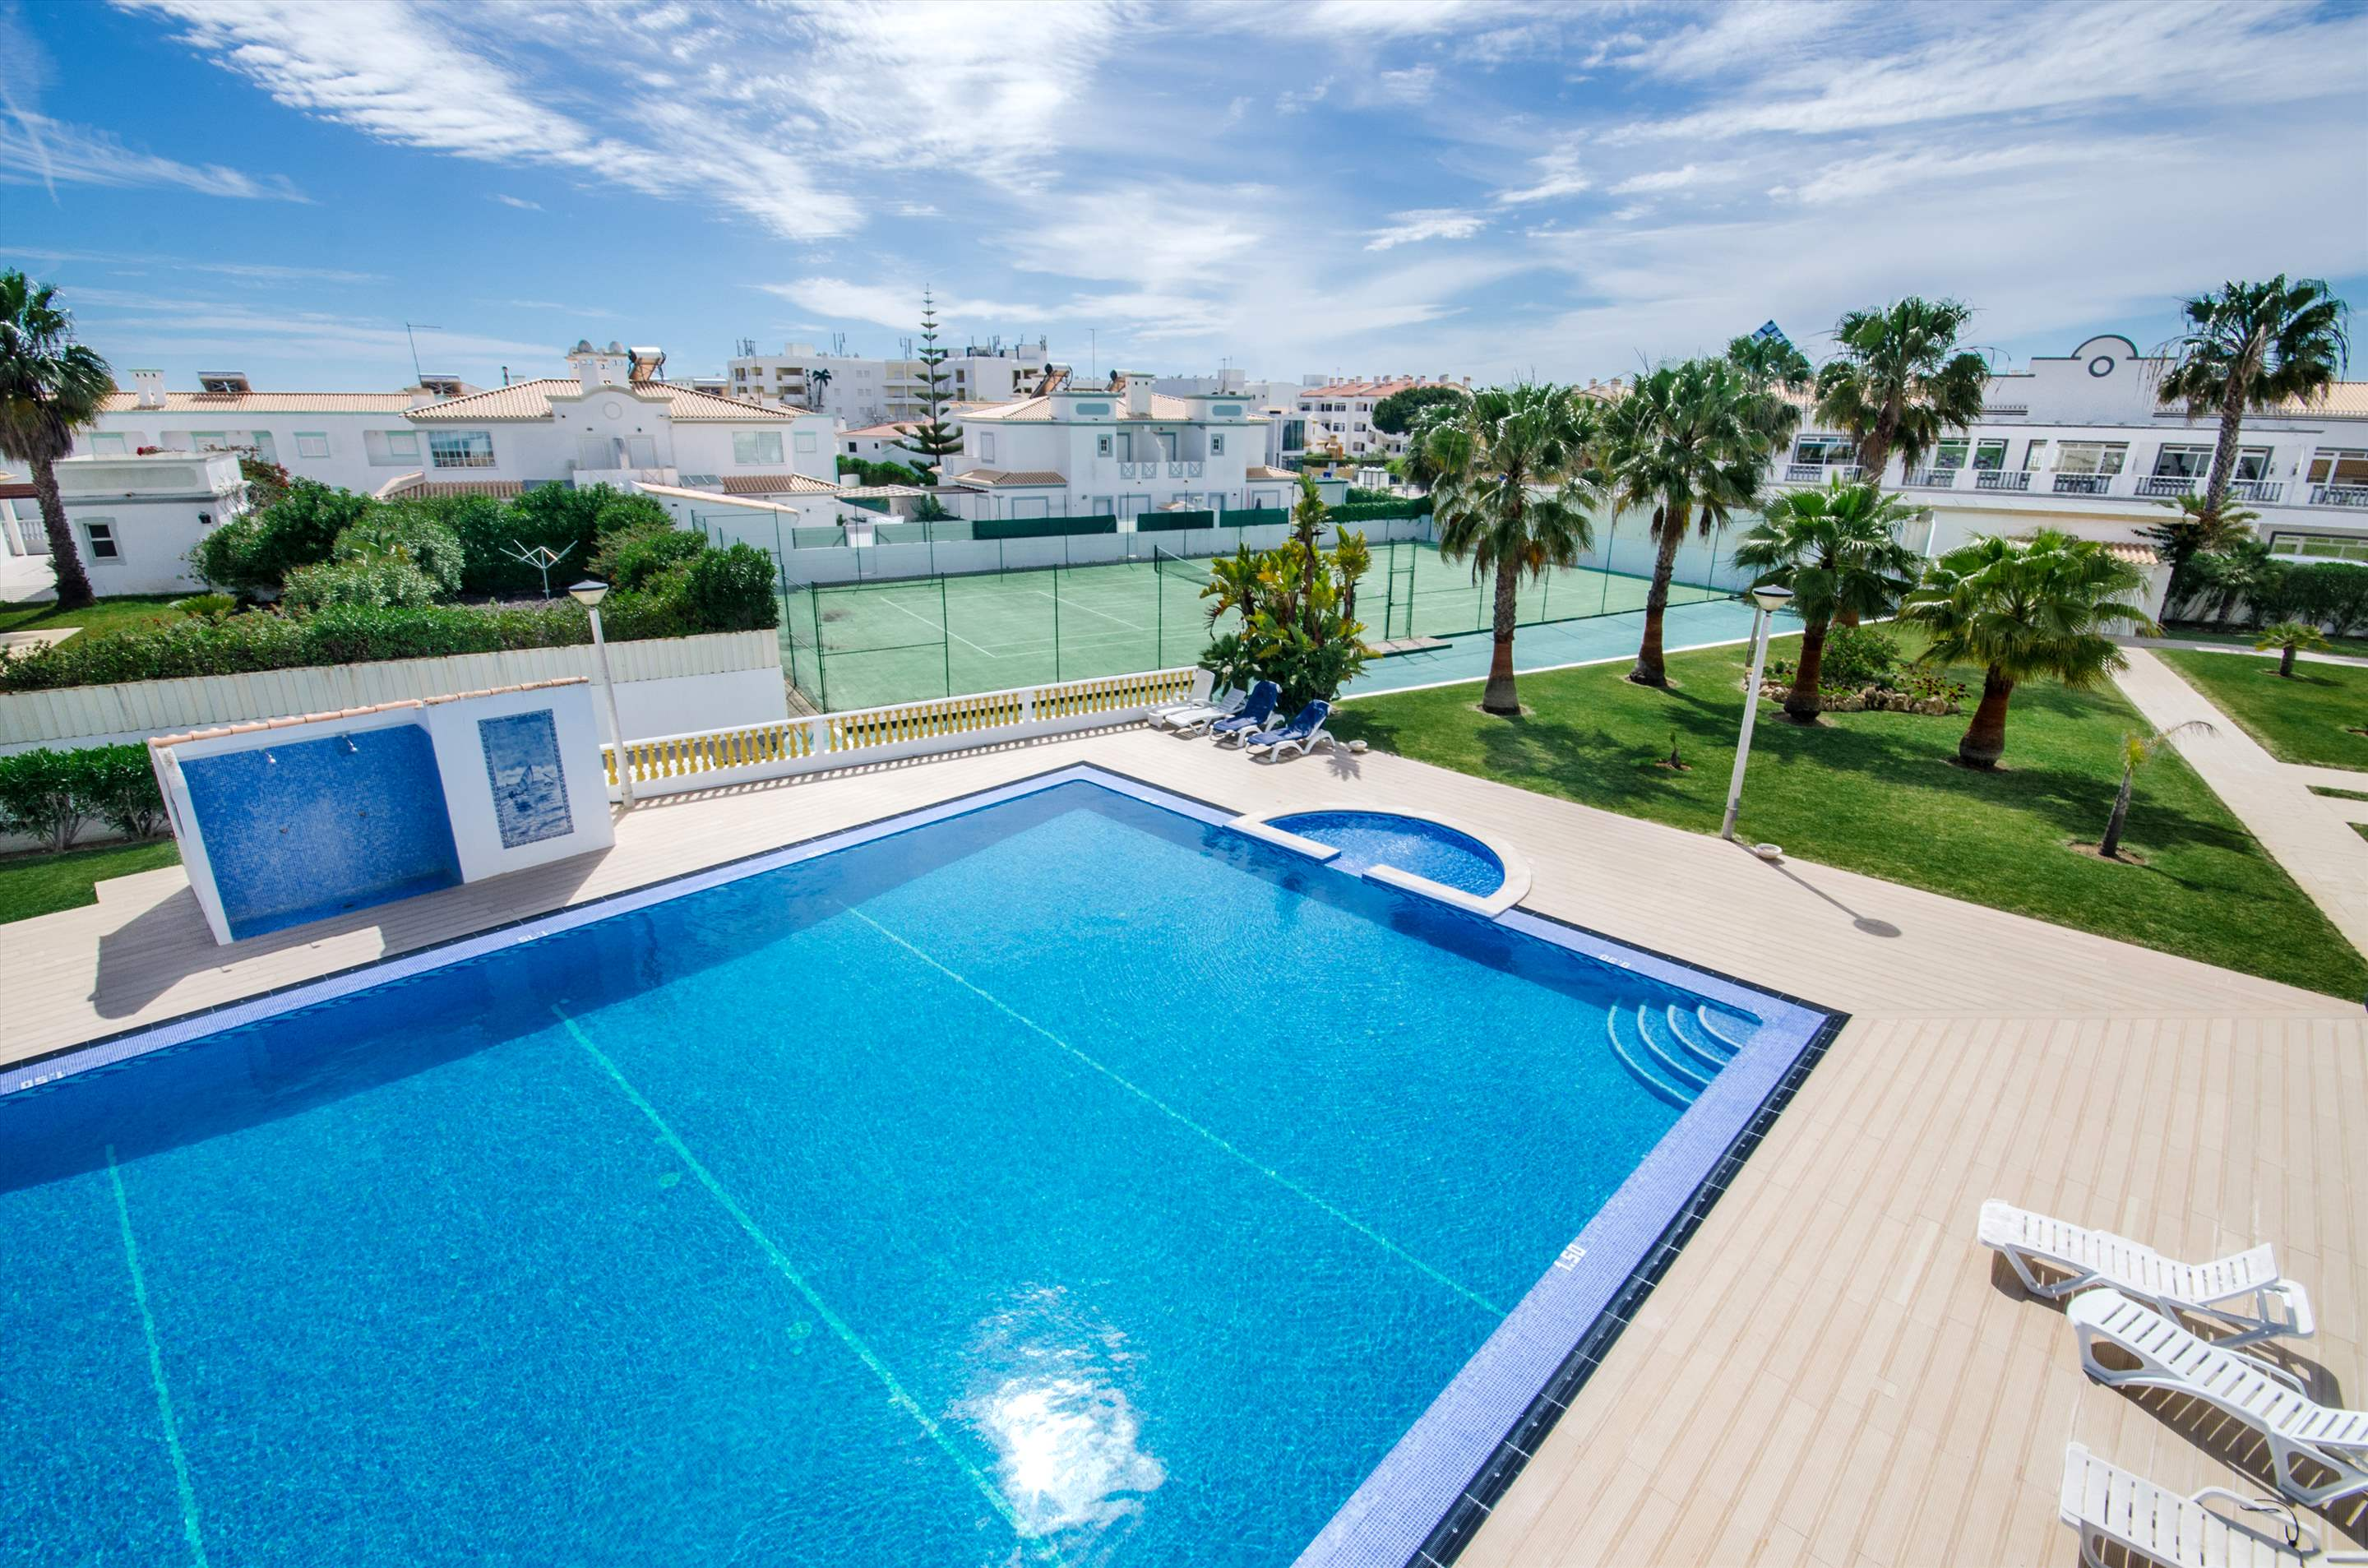 Apt O Monte, Up to 6 Persons, 3 bedroom apartment in Gale, Vale da Parra and Guia, Algarve Photo #15